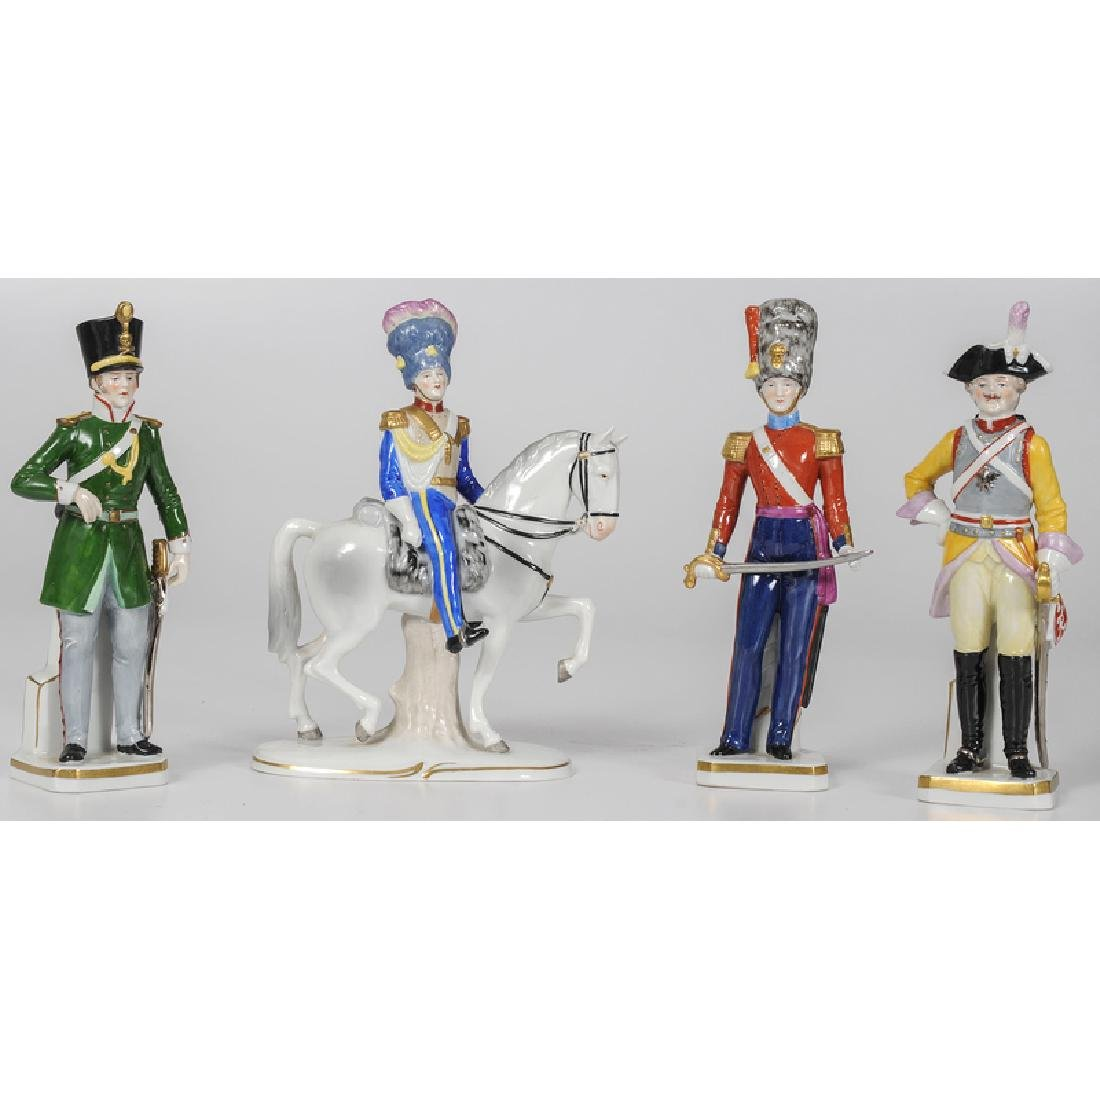 Sitzendorf Porcelain Military Figurines